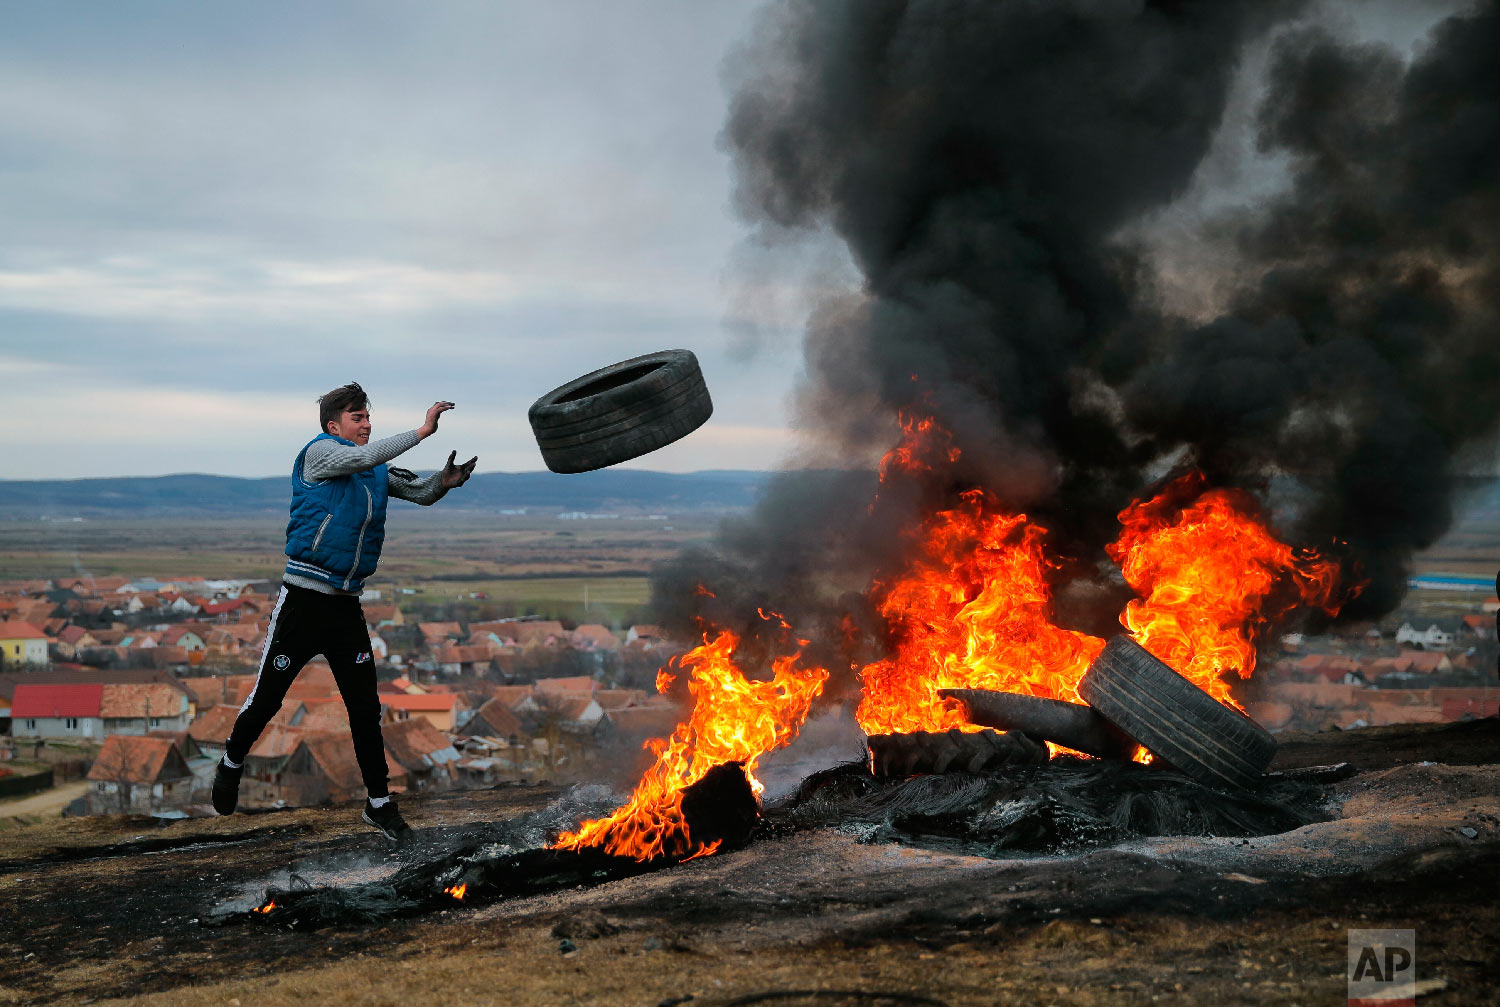 A young man throws a tire during a ritual marking the upcoming Clean Monday, the beginning of the Great Lent, 40 days ahead of Orthodox Easter, on the hills surrounding the village of Poplaca, in central Romania's Transylvania region, Sunday, March 10, 2019. (AP Photo/Vadim Ghirda)